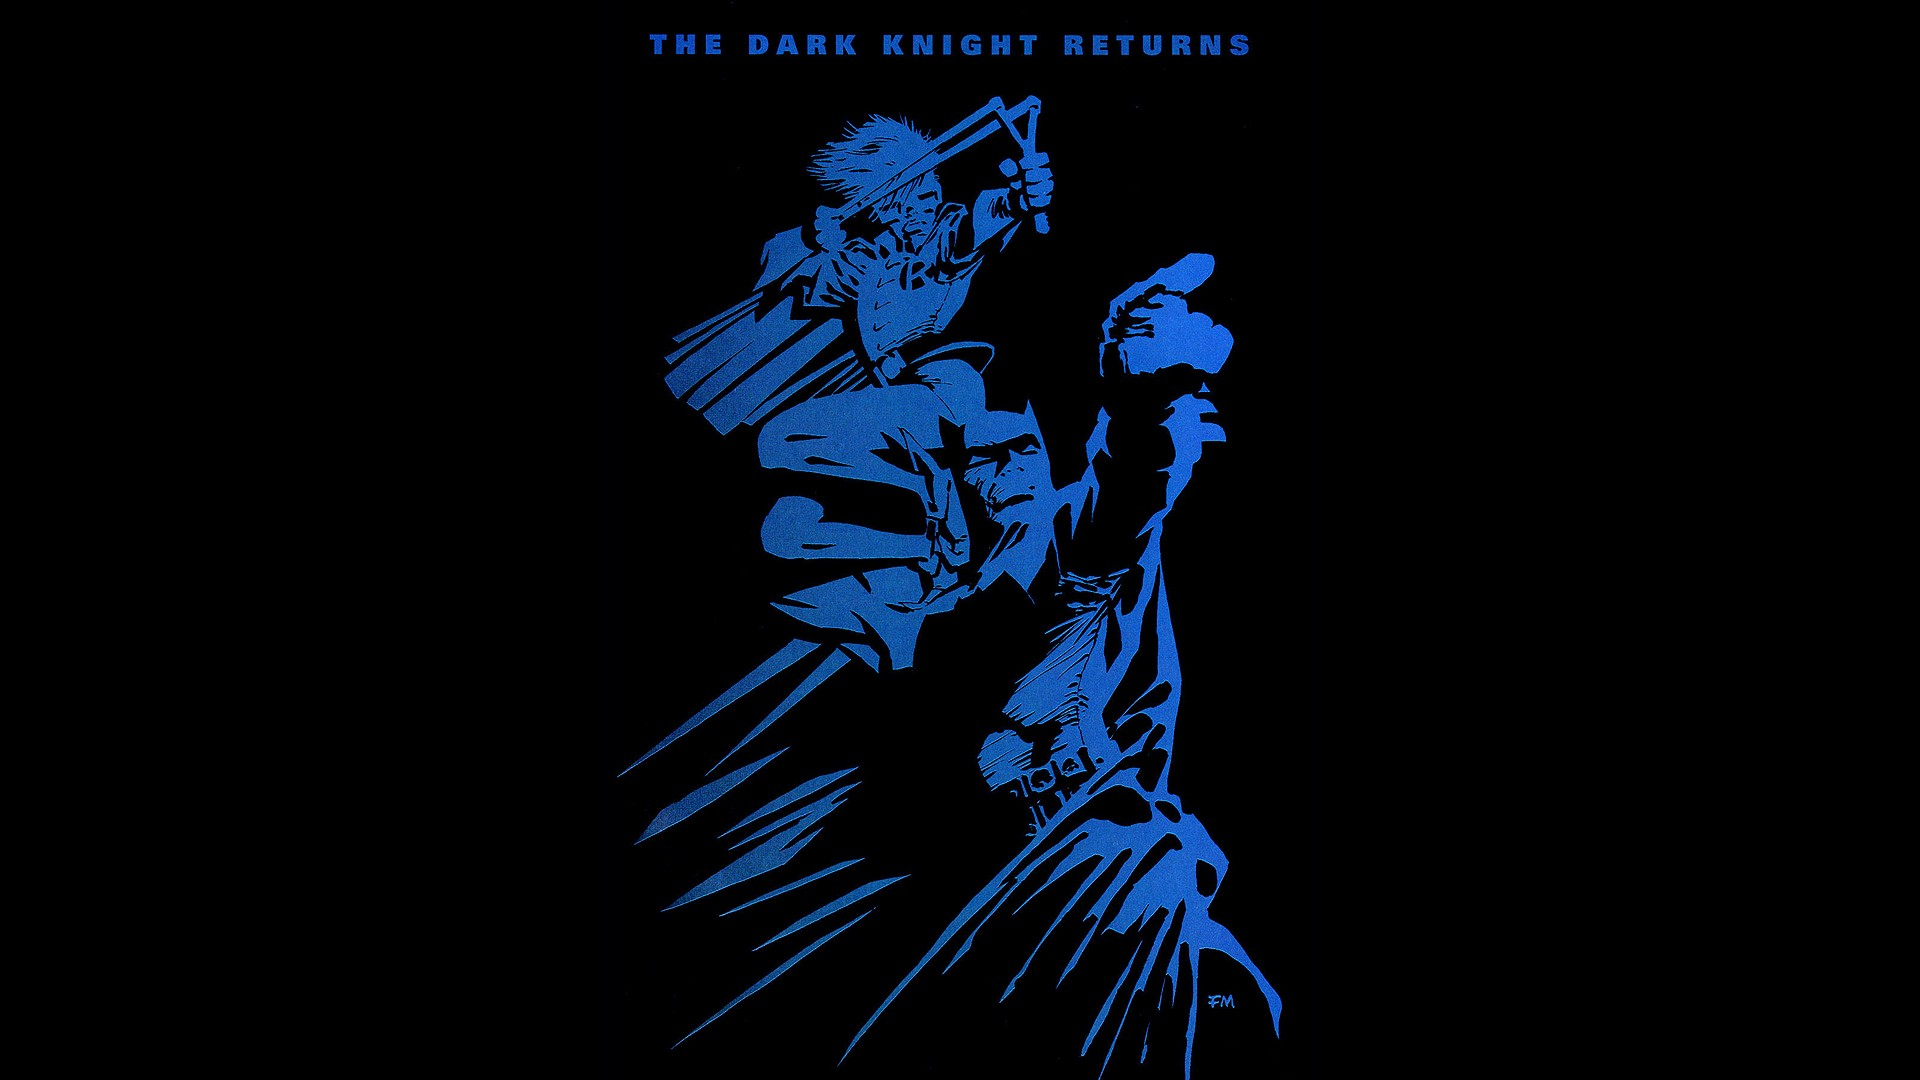 The Dark Knight Returns Hd Wallpaper Background Image 1920x1080